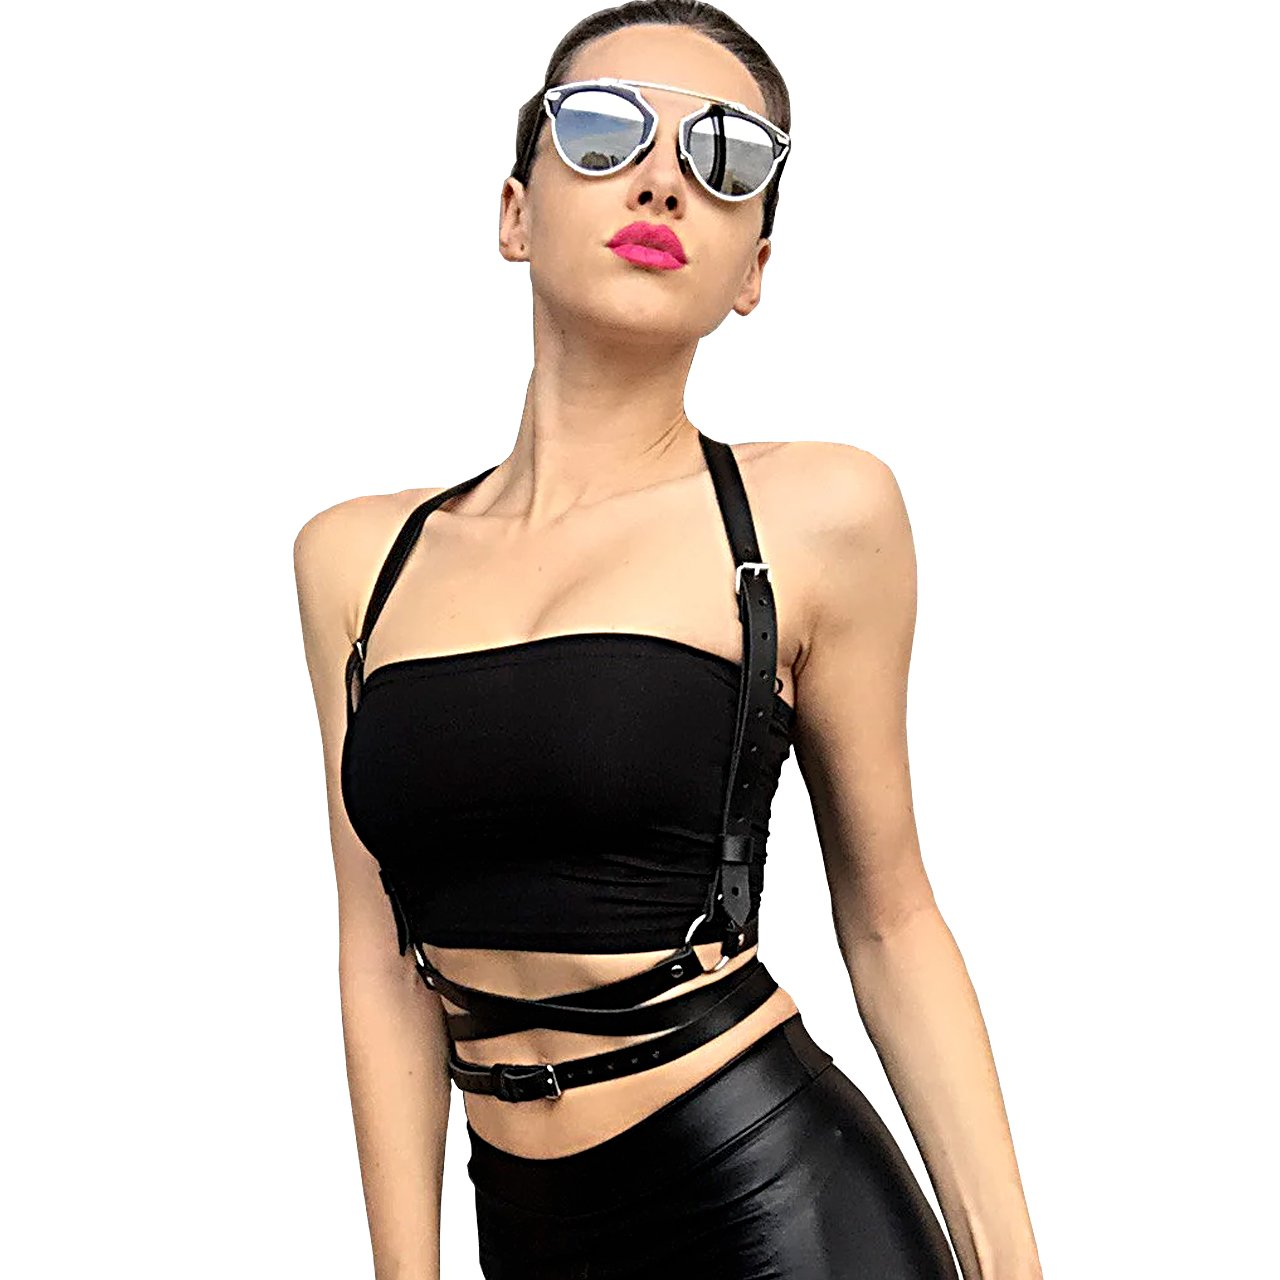 Homelix Punk Leather Body Chest Straps Waist Harness Straps Adjustable For Women (style 3)